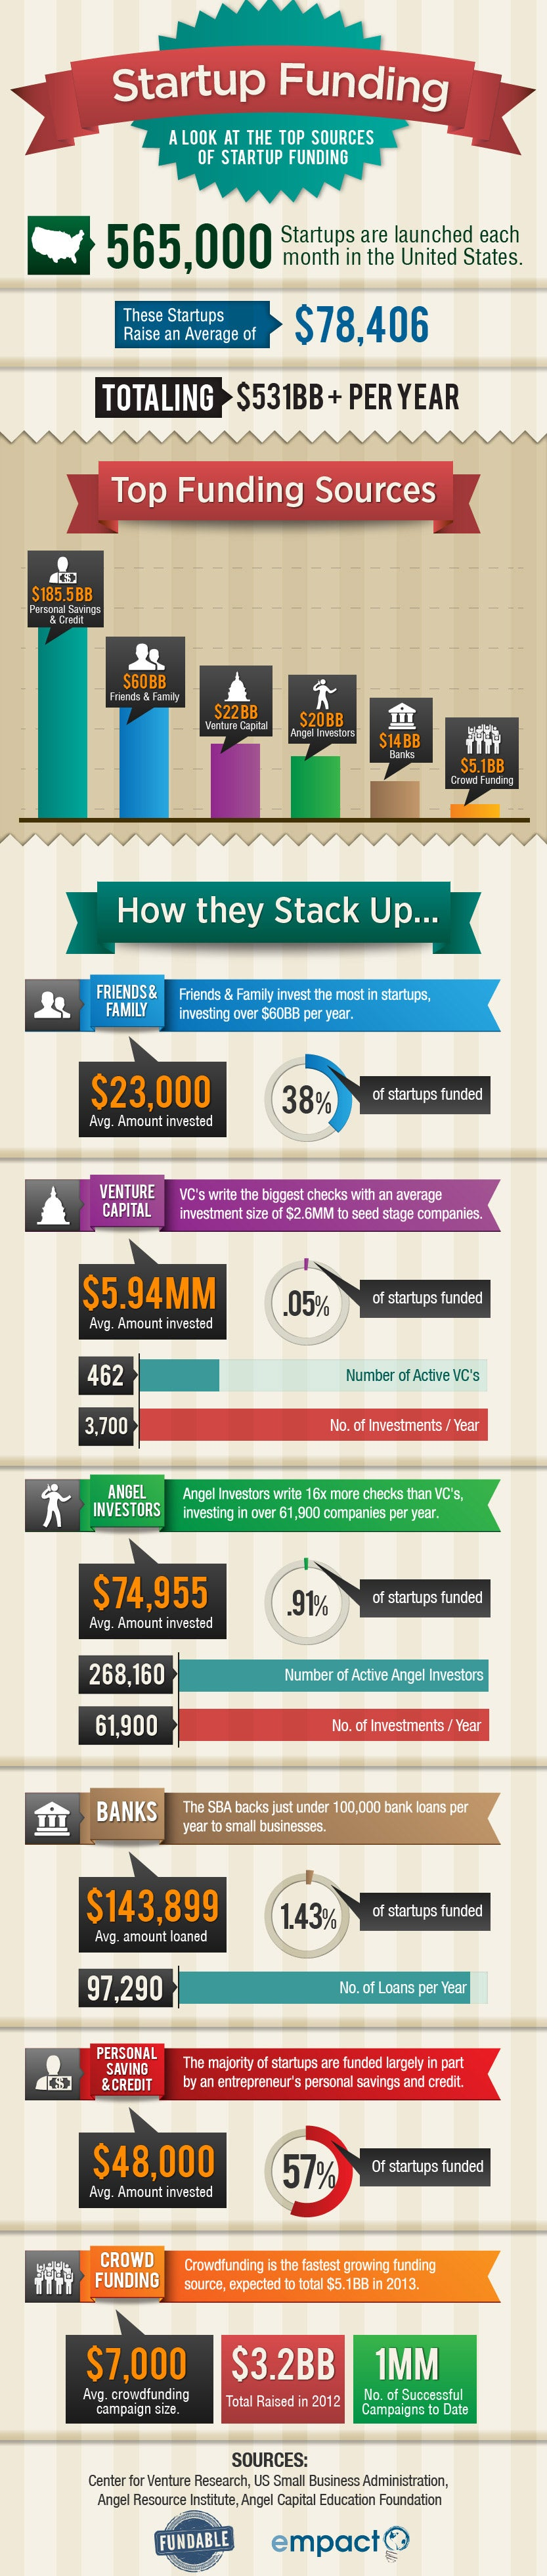 Where Startup Funding Really Comes From (Infographic)